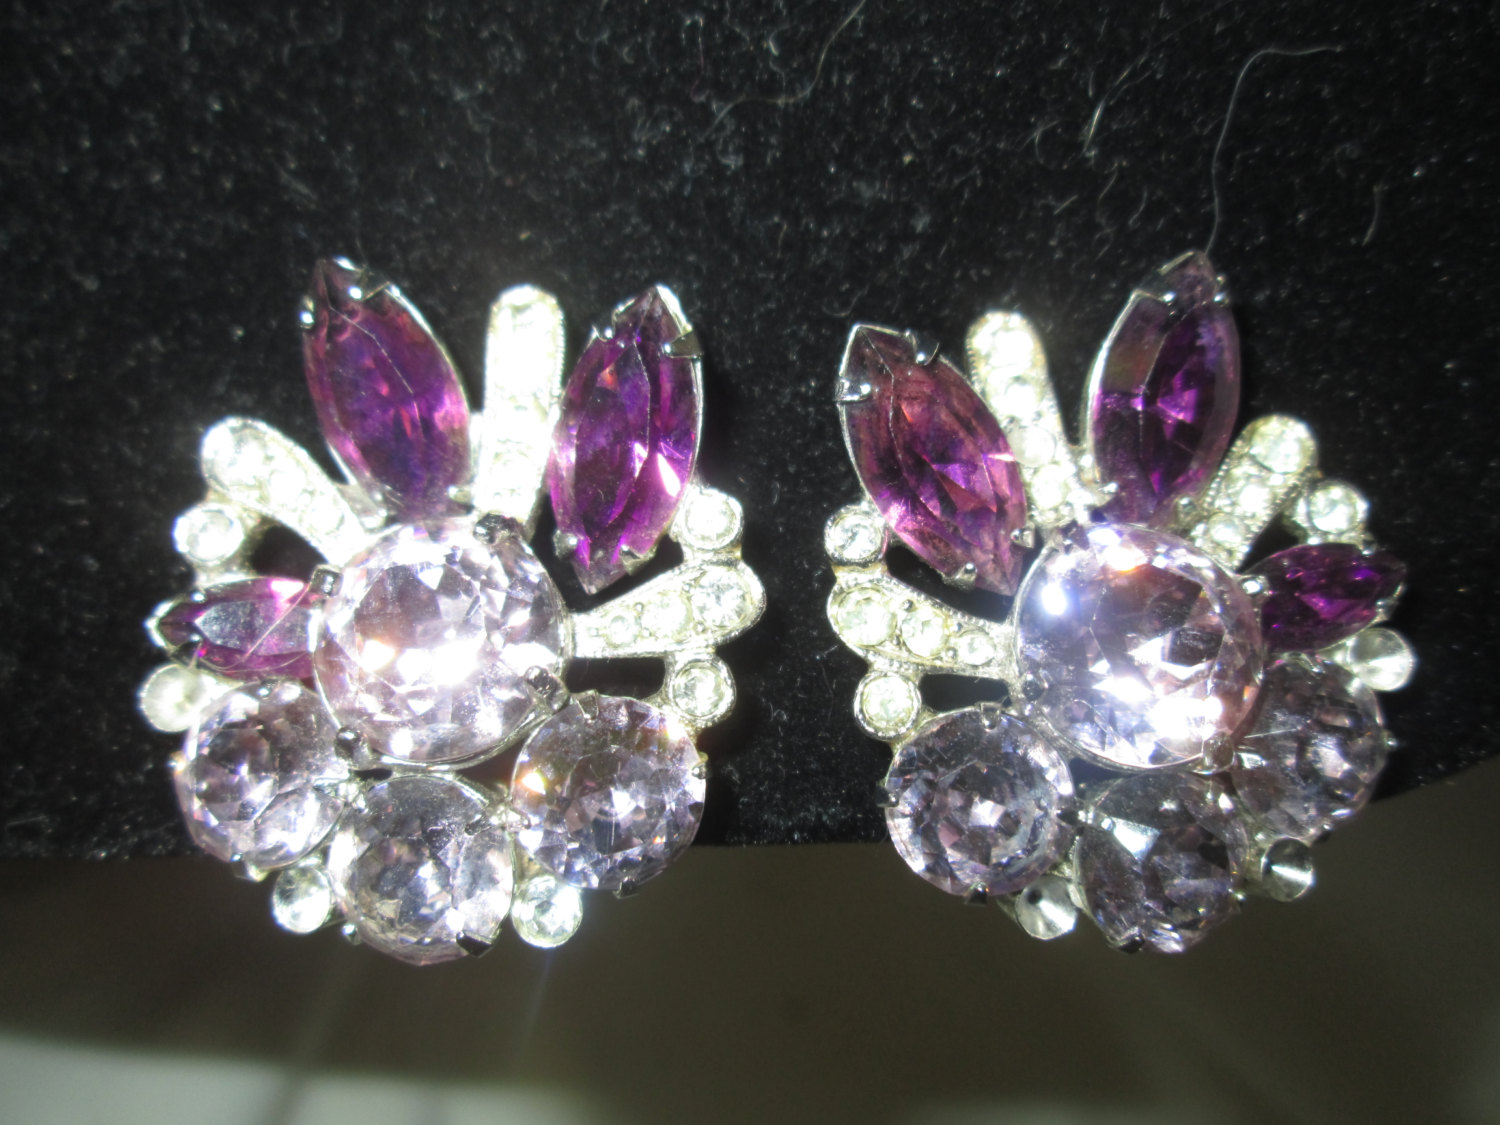 3f7a25626 Beautiful Large Rhodium Plated Clip Earrngs Rhinestones Eisenberg Ice  Jewelry WOW Pieces Wedding Evening Jewelry signed